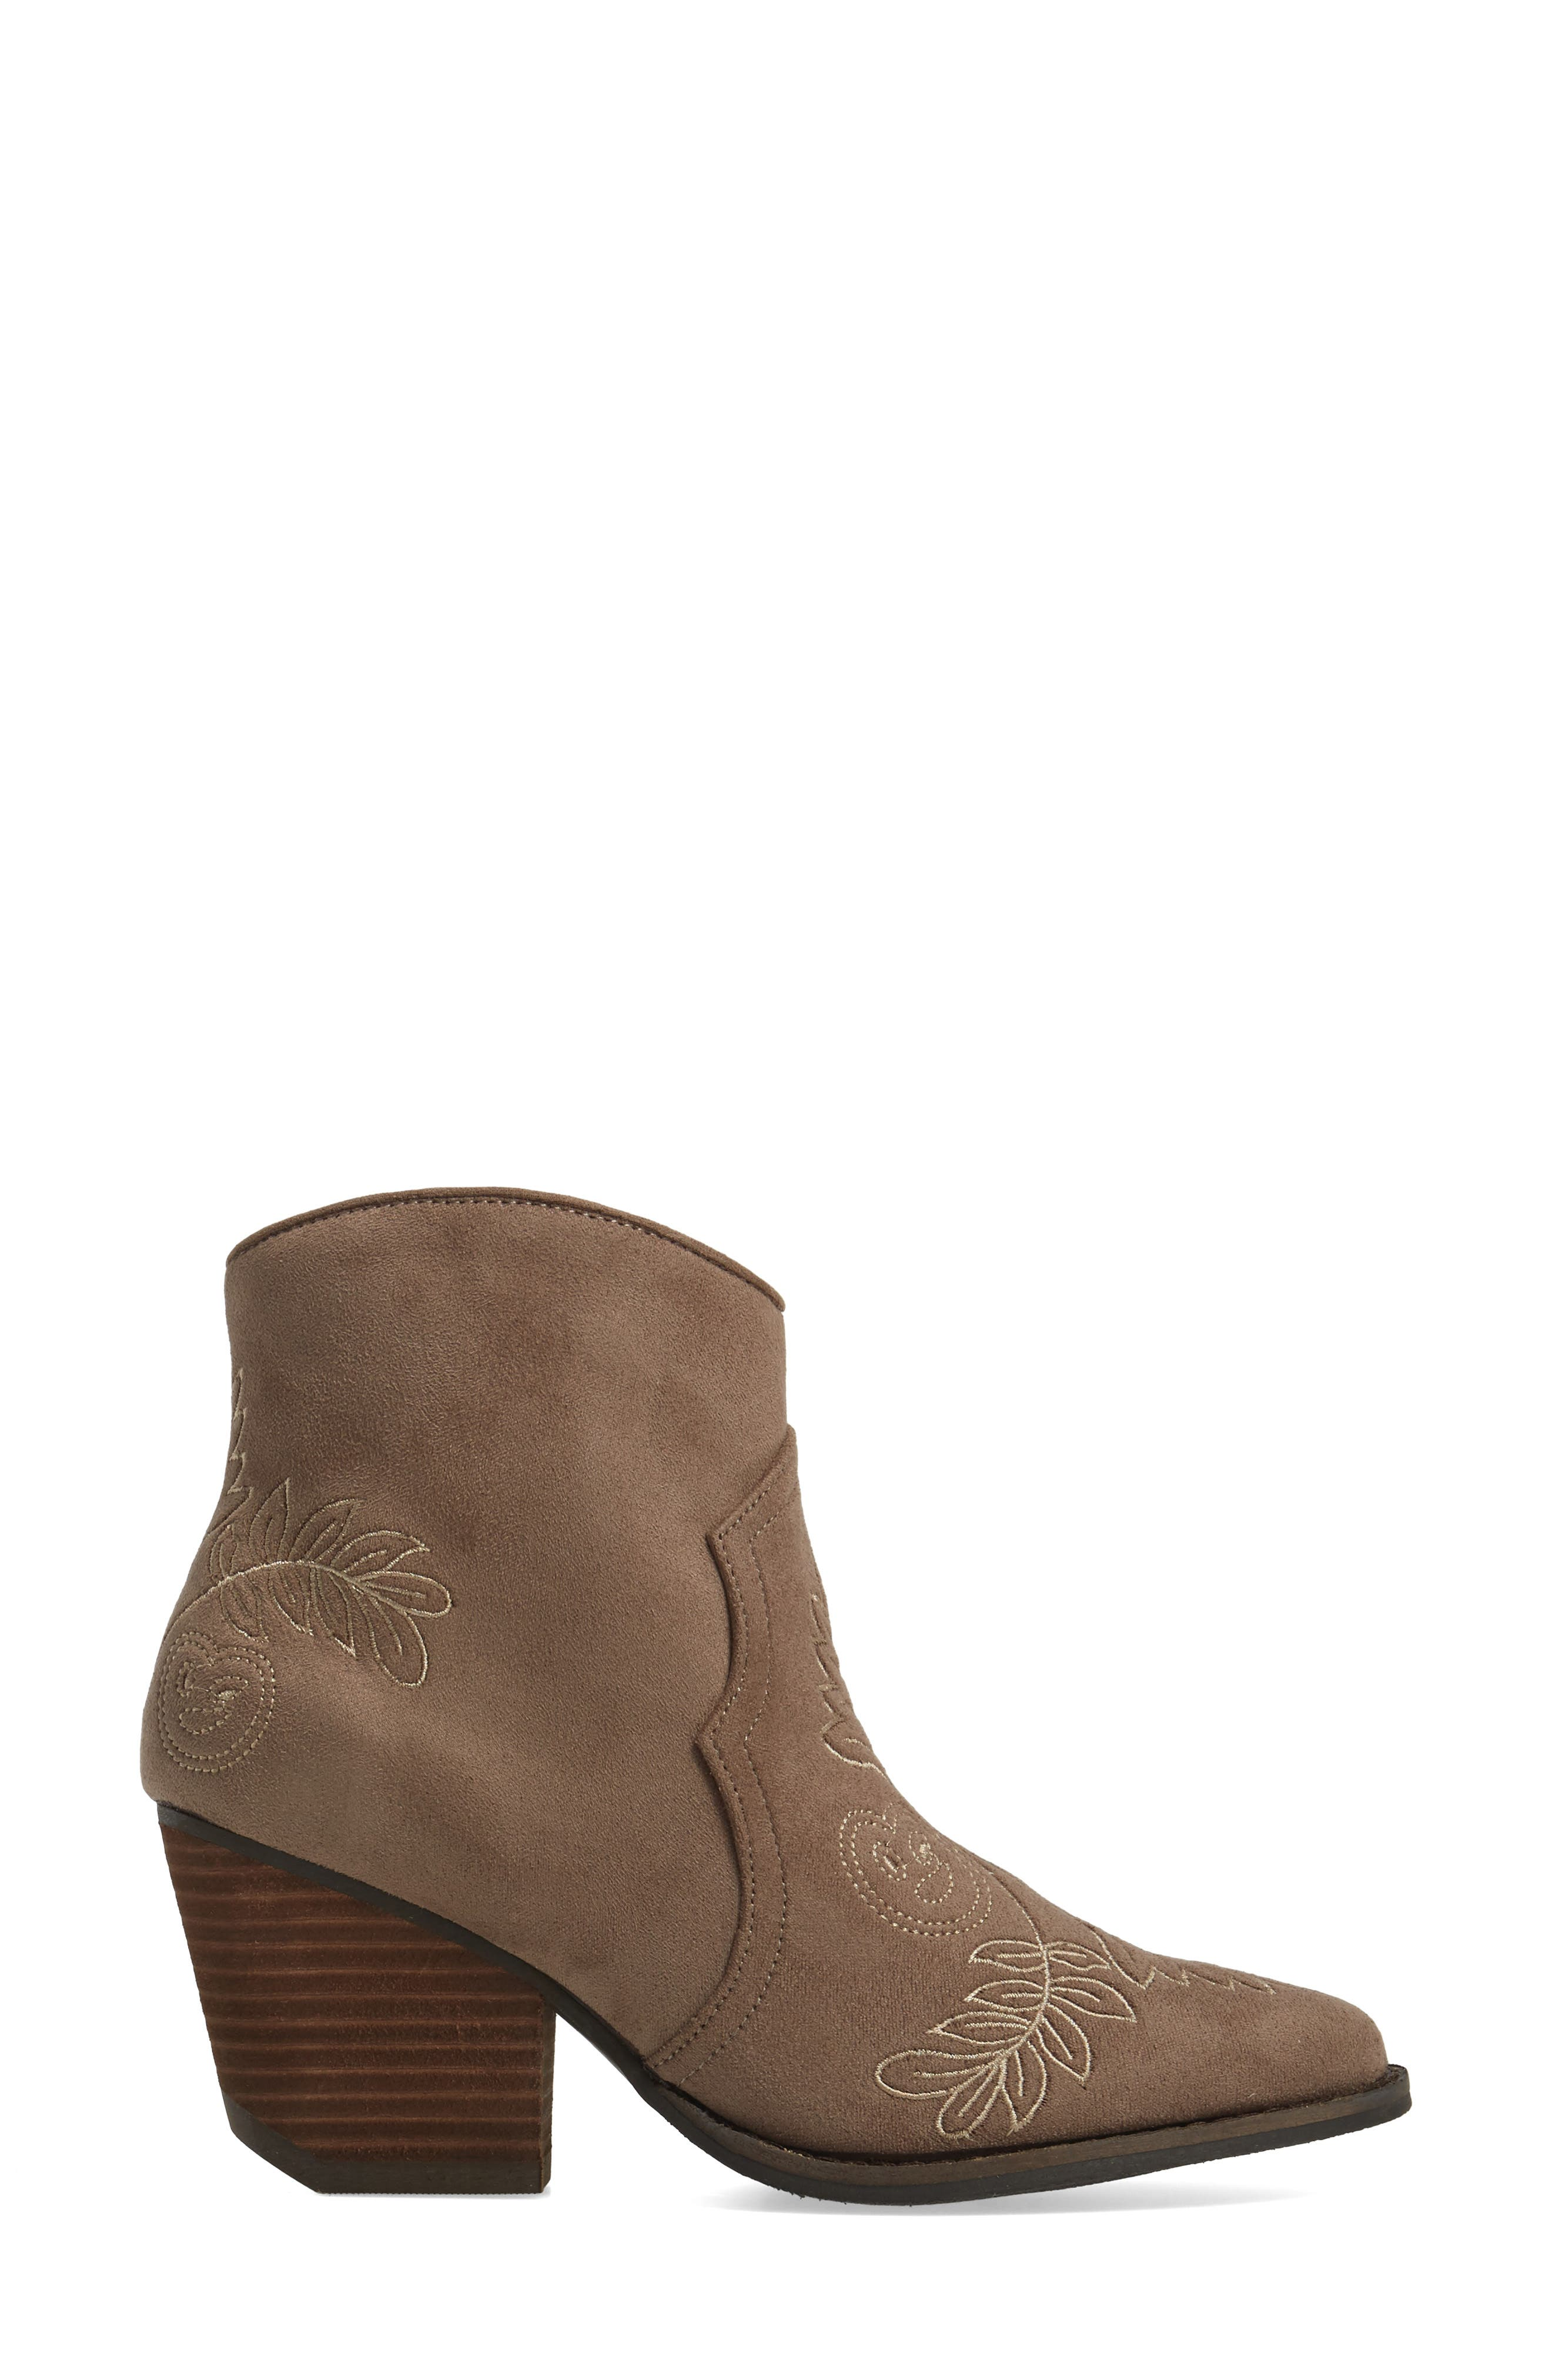 Axis Embroidered Bootie,                             Alternate thumbnail 3, color,                             Taupe Suede